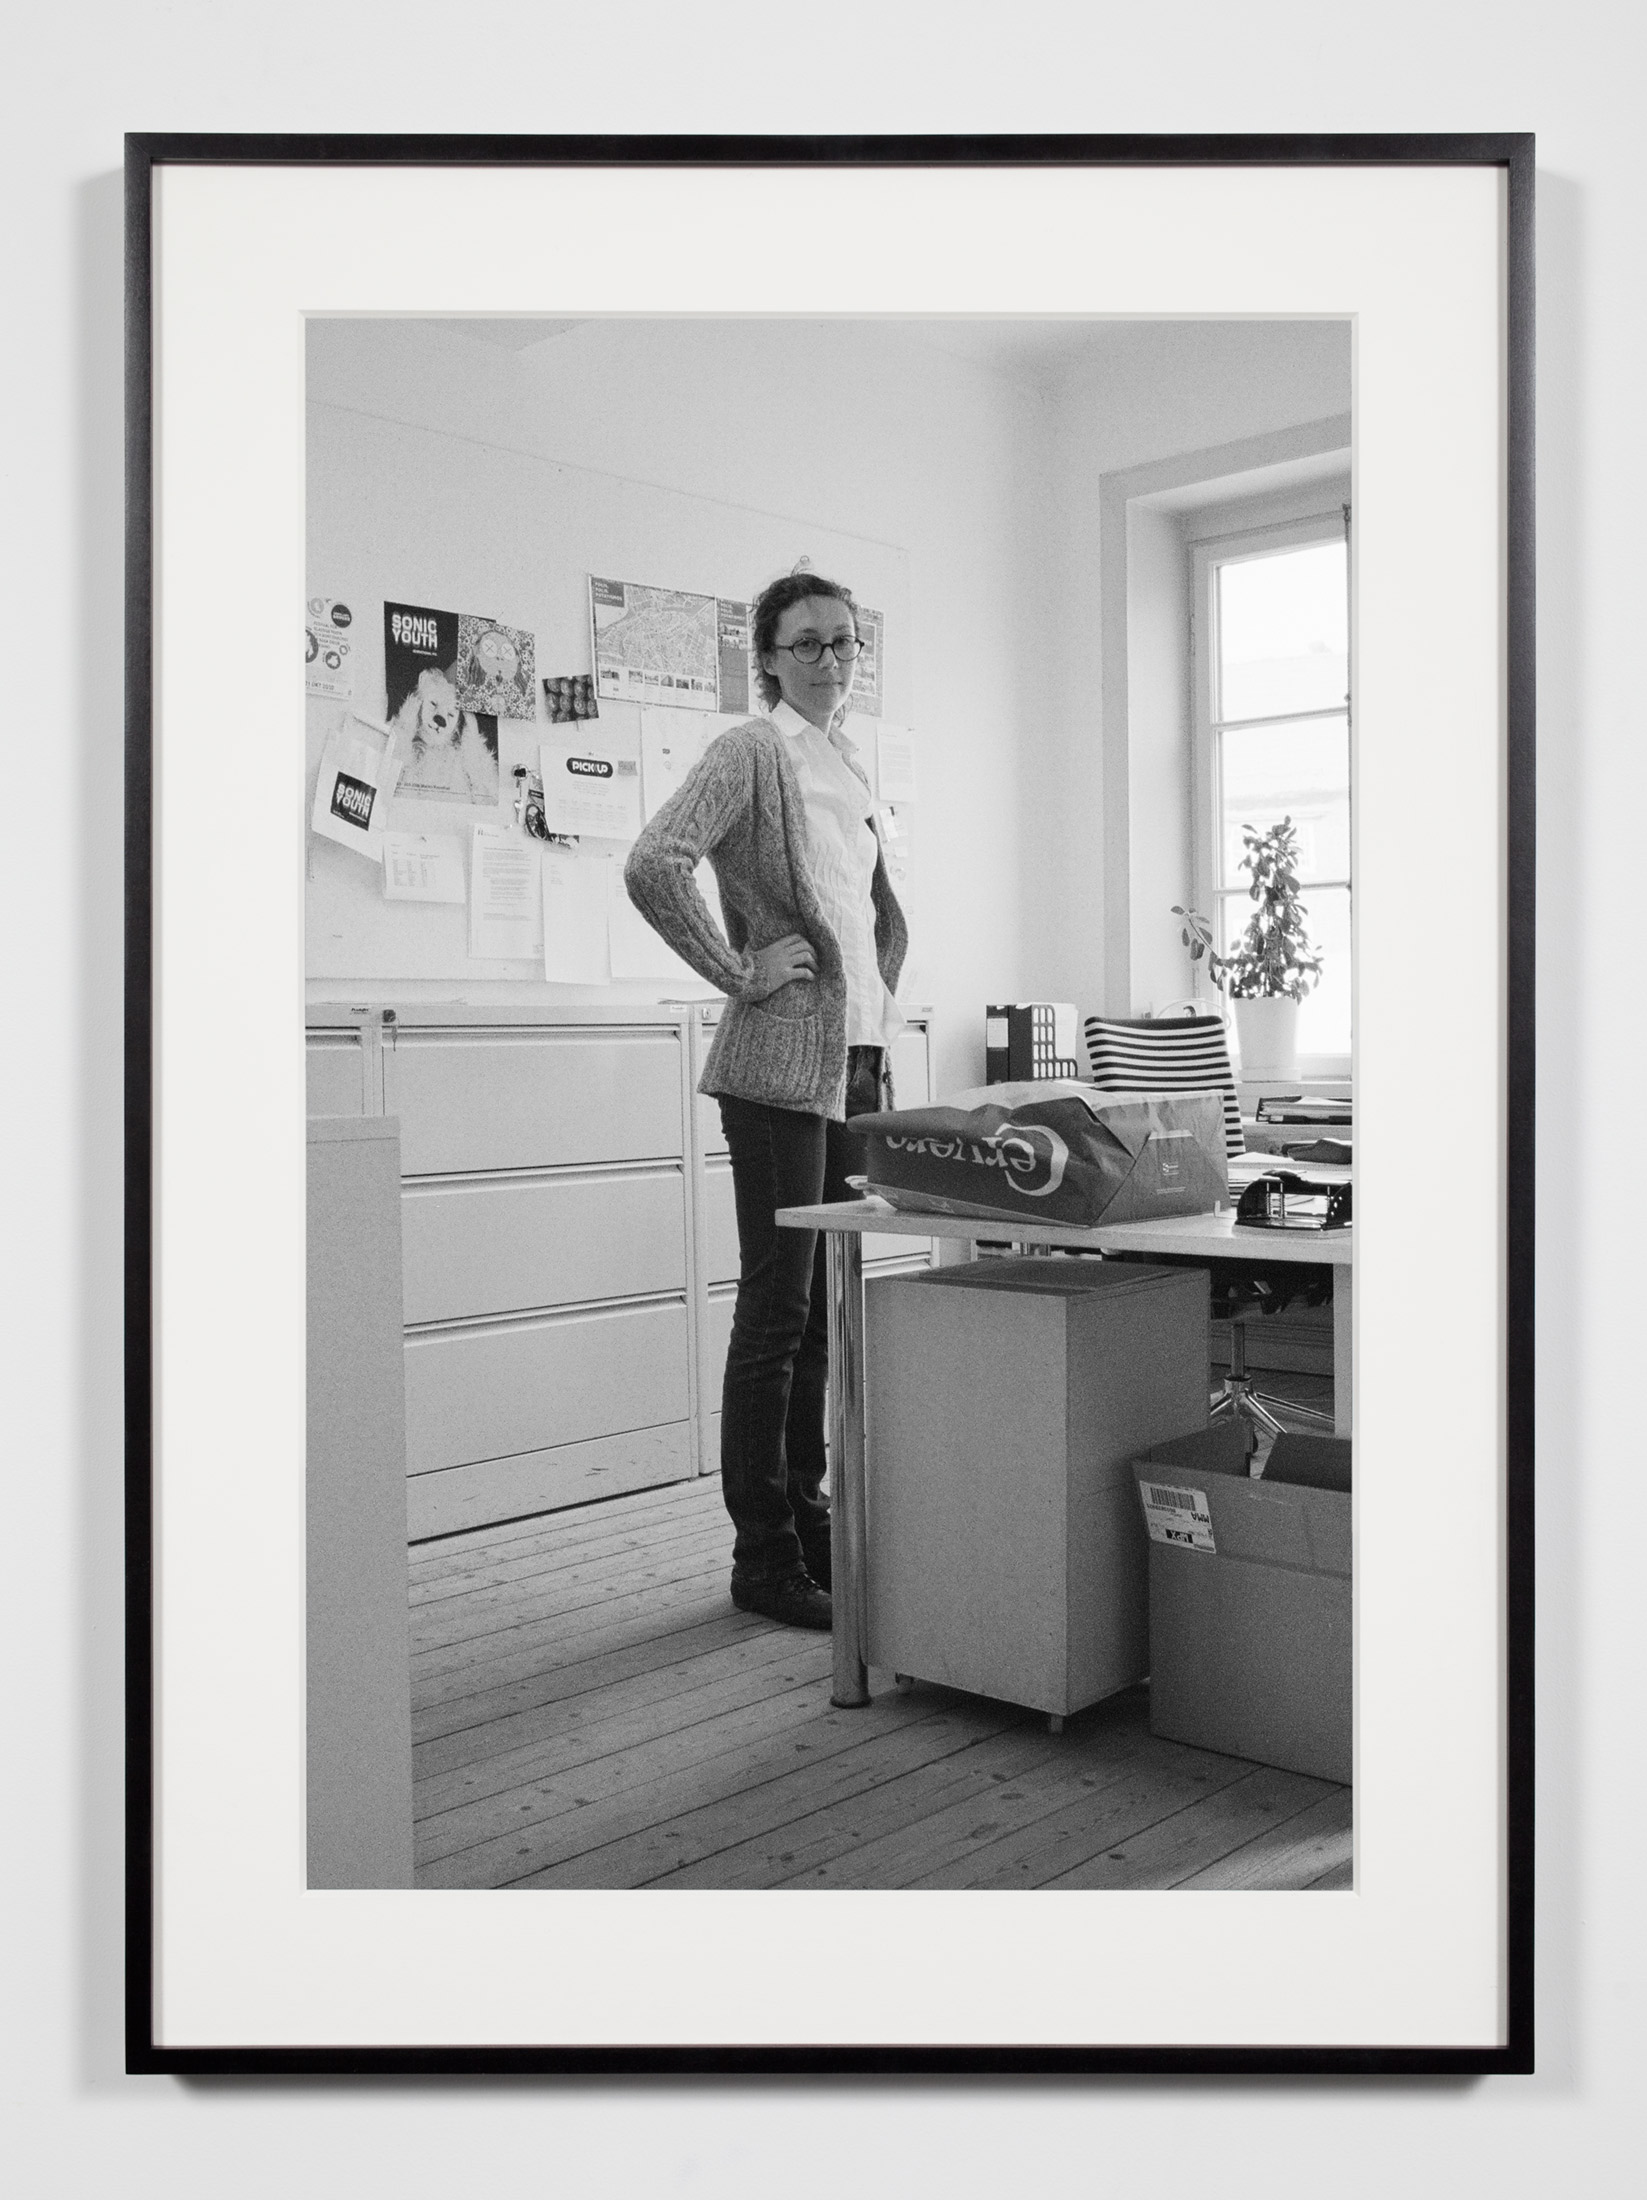 Kunsthalle Assistant, Malmö, Sweden, October 16, 2010    2011   Epson Ultrachrome K3 archival ink jet print on Hahnemühle Photo Rag paper  36 3/8 x 26 3/8 inches   Industrial Portraits, 2008–